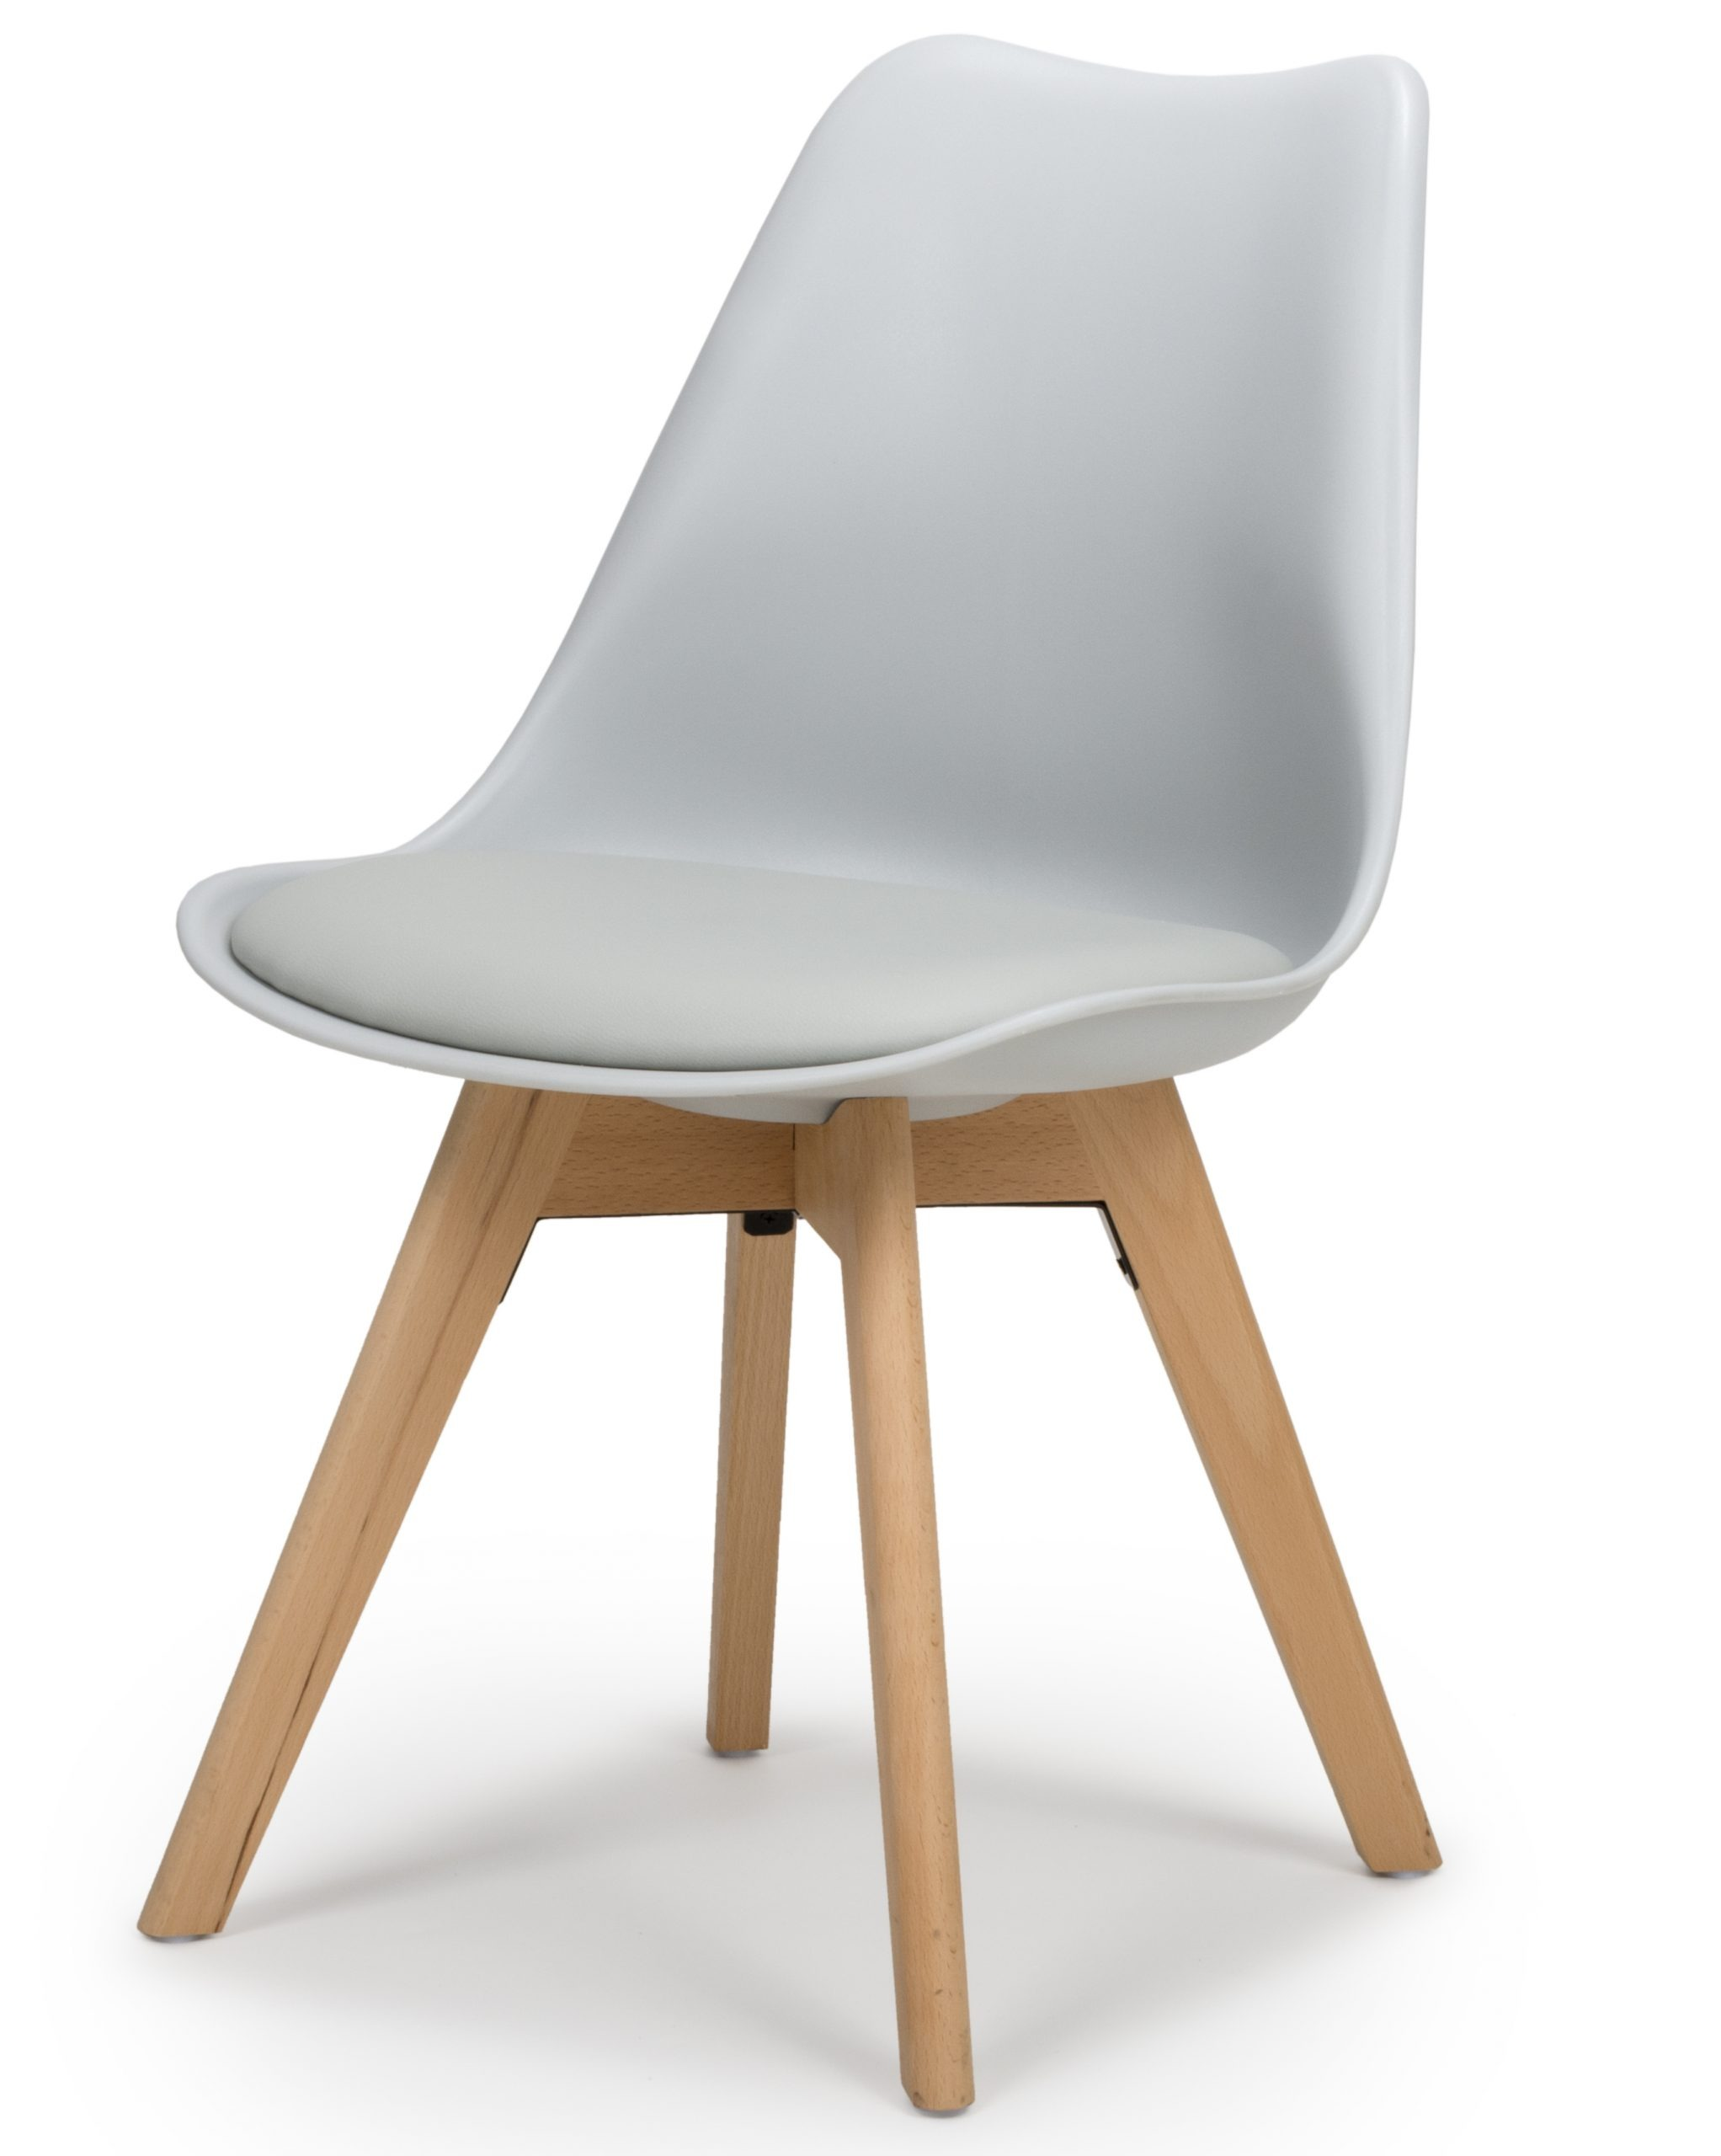 Urban Grey Molded plastic dining chair